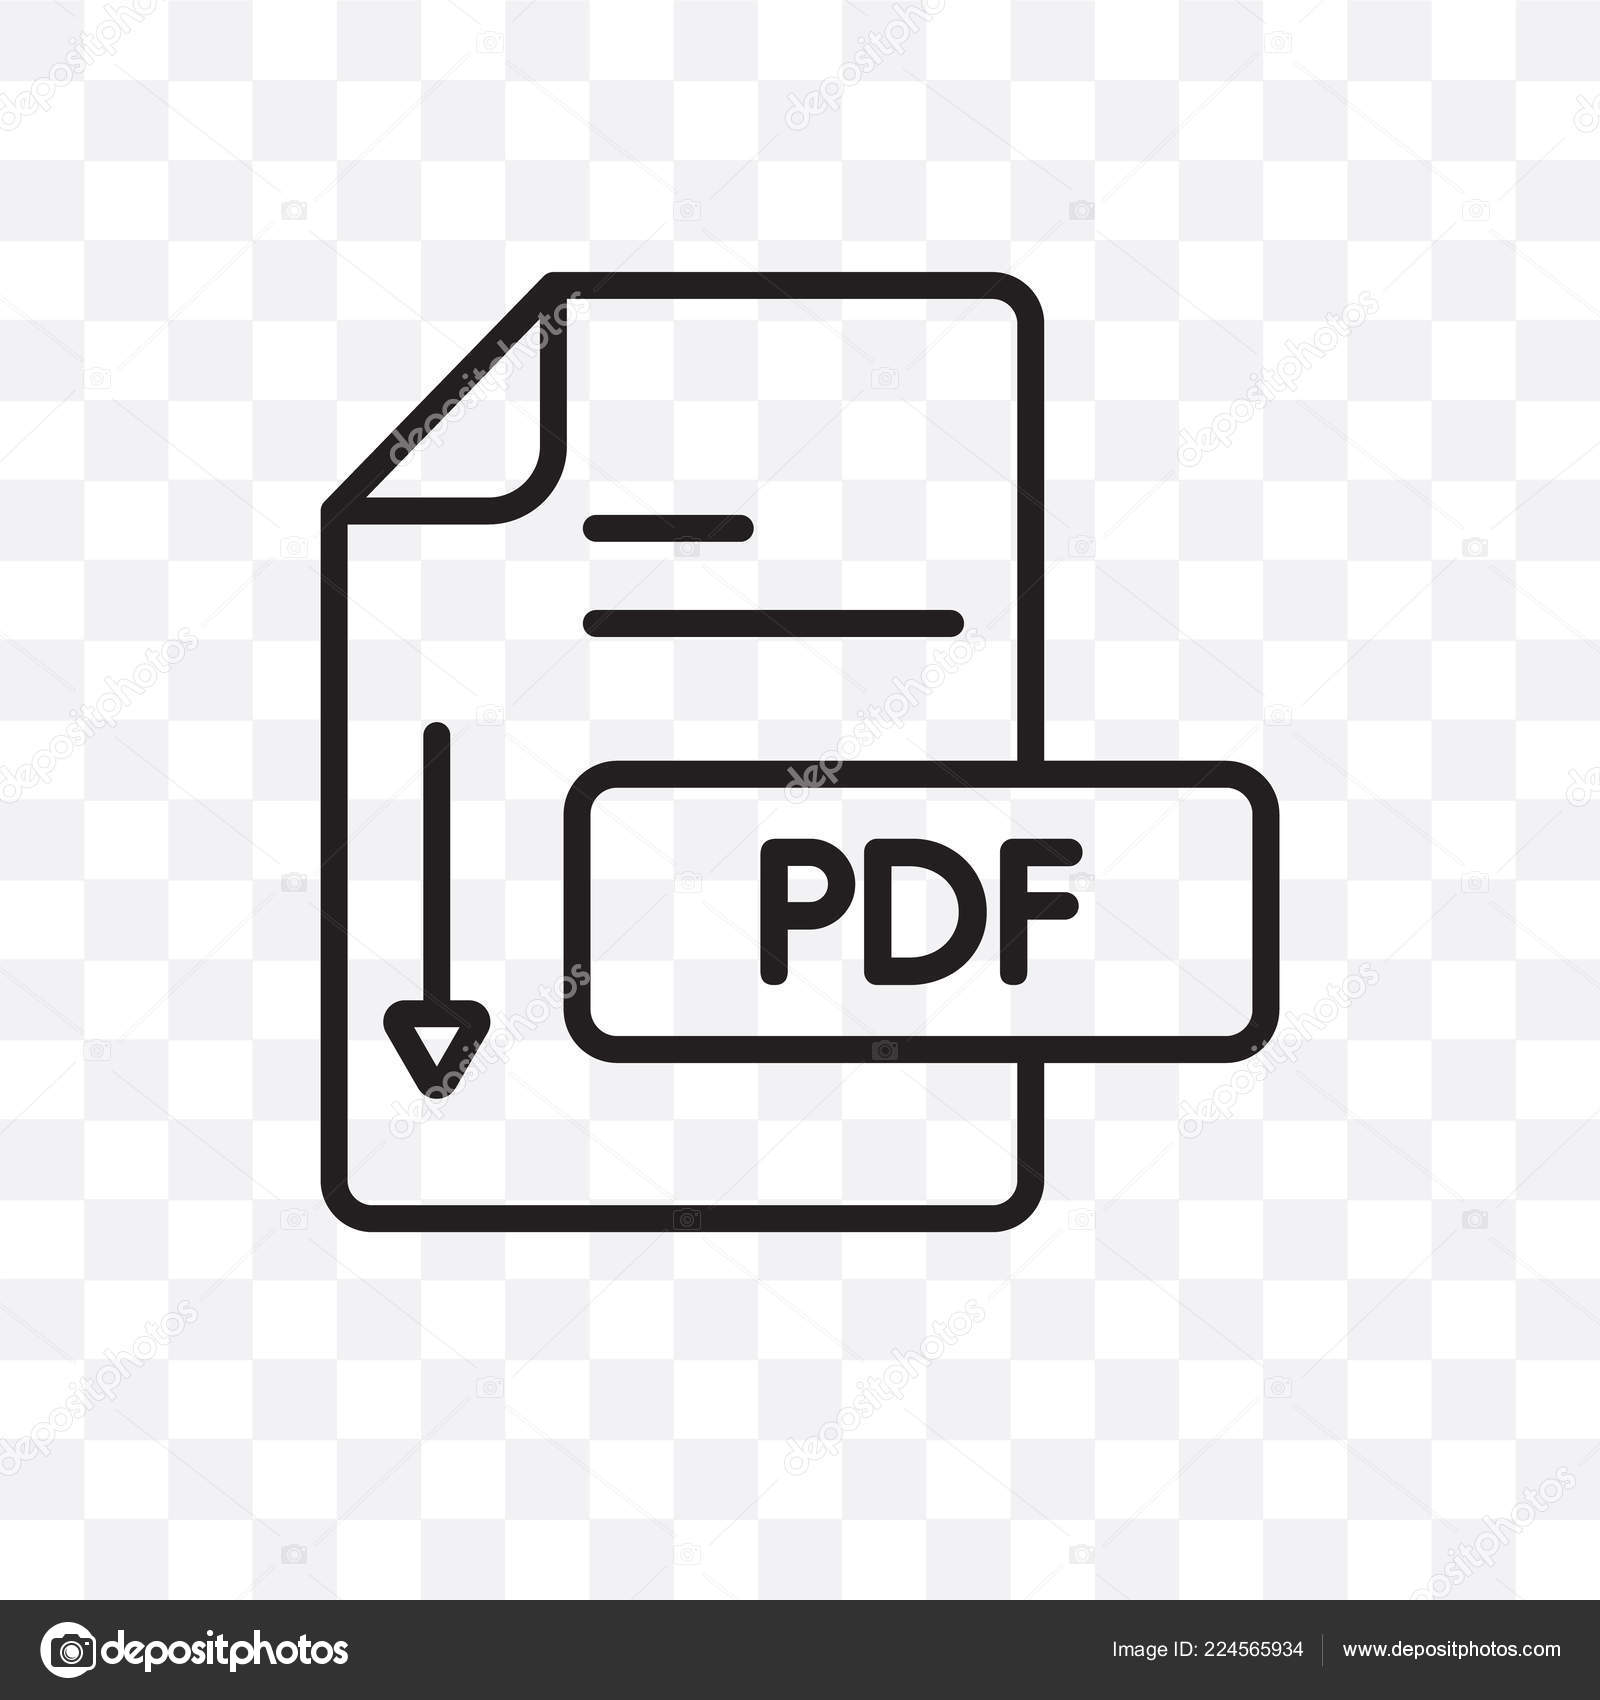 Pdf Vector Linear Icon Isolated Transparent Background Pdf